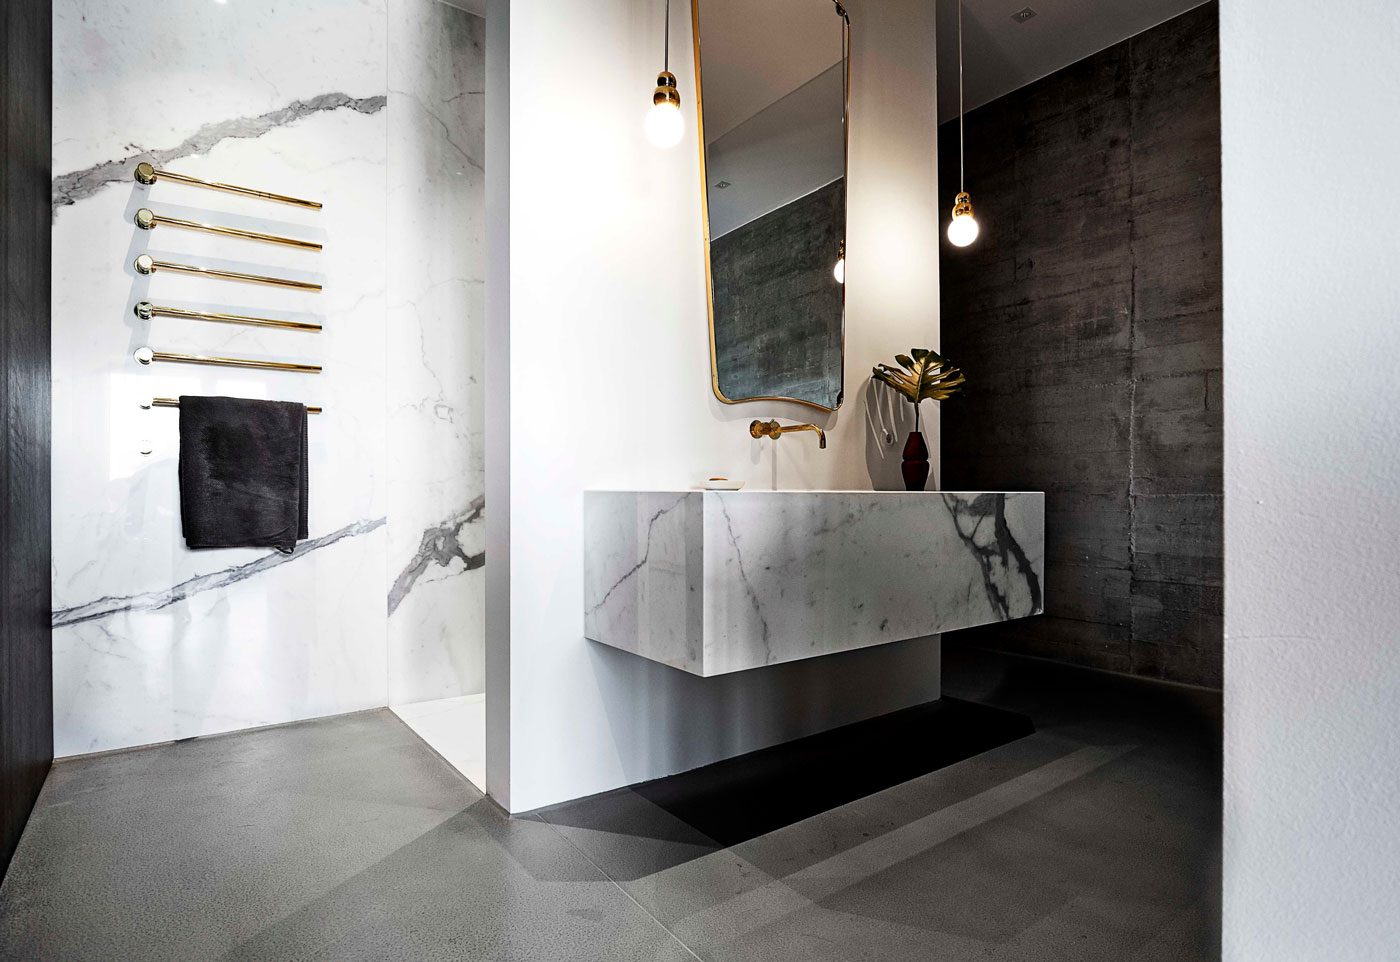 Bathroom marble wall, pendant lighting